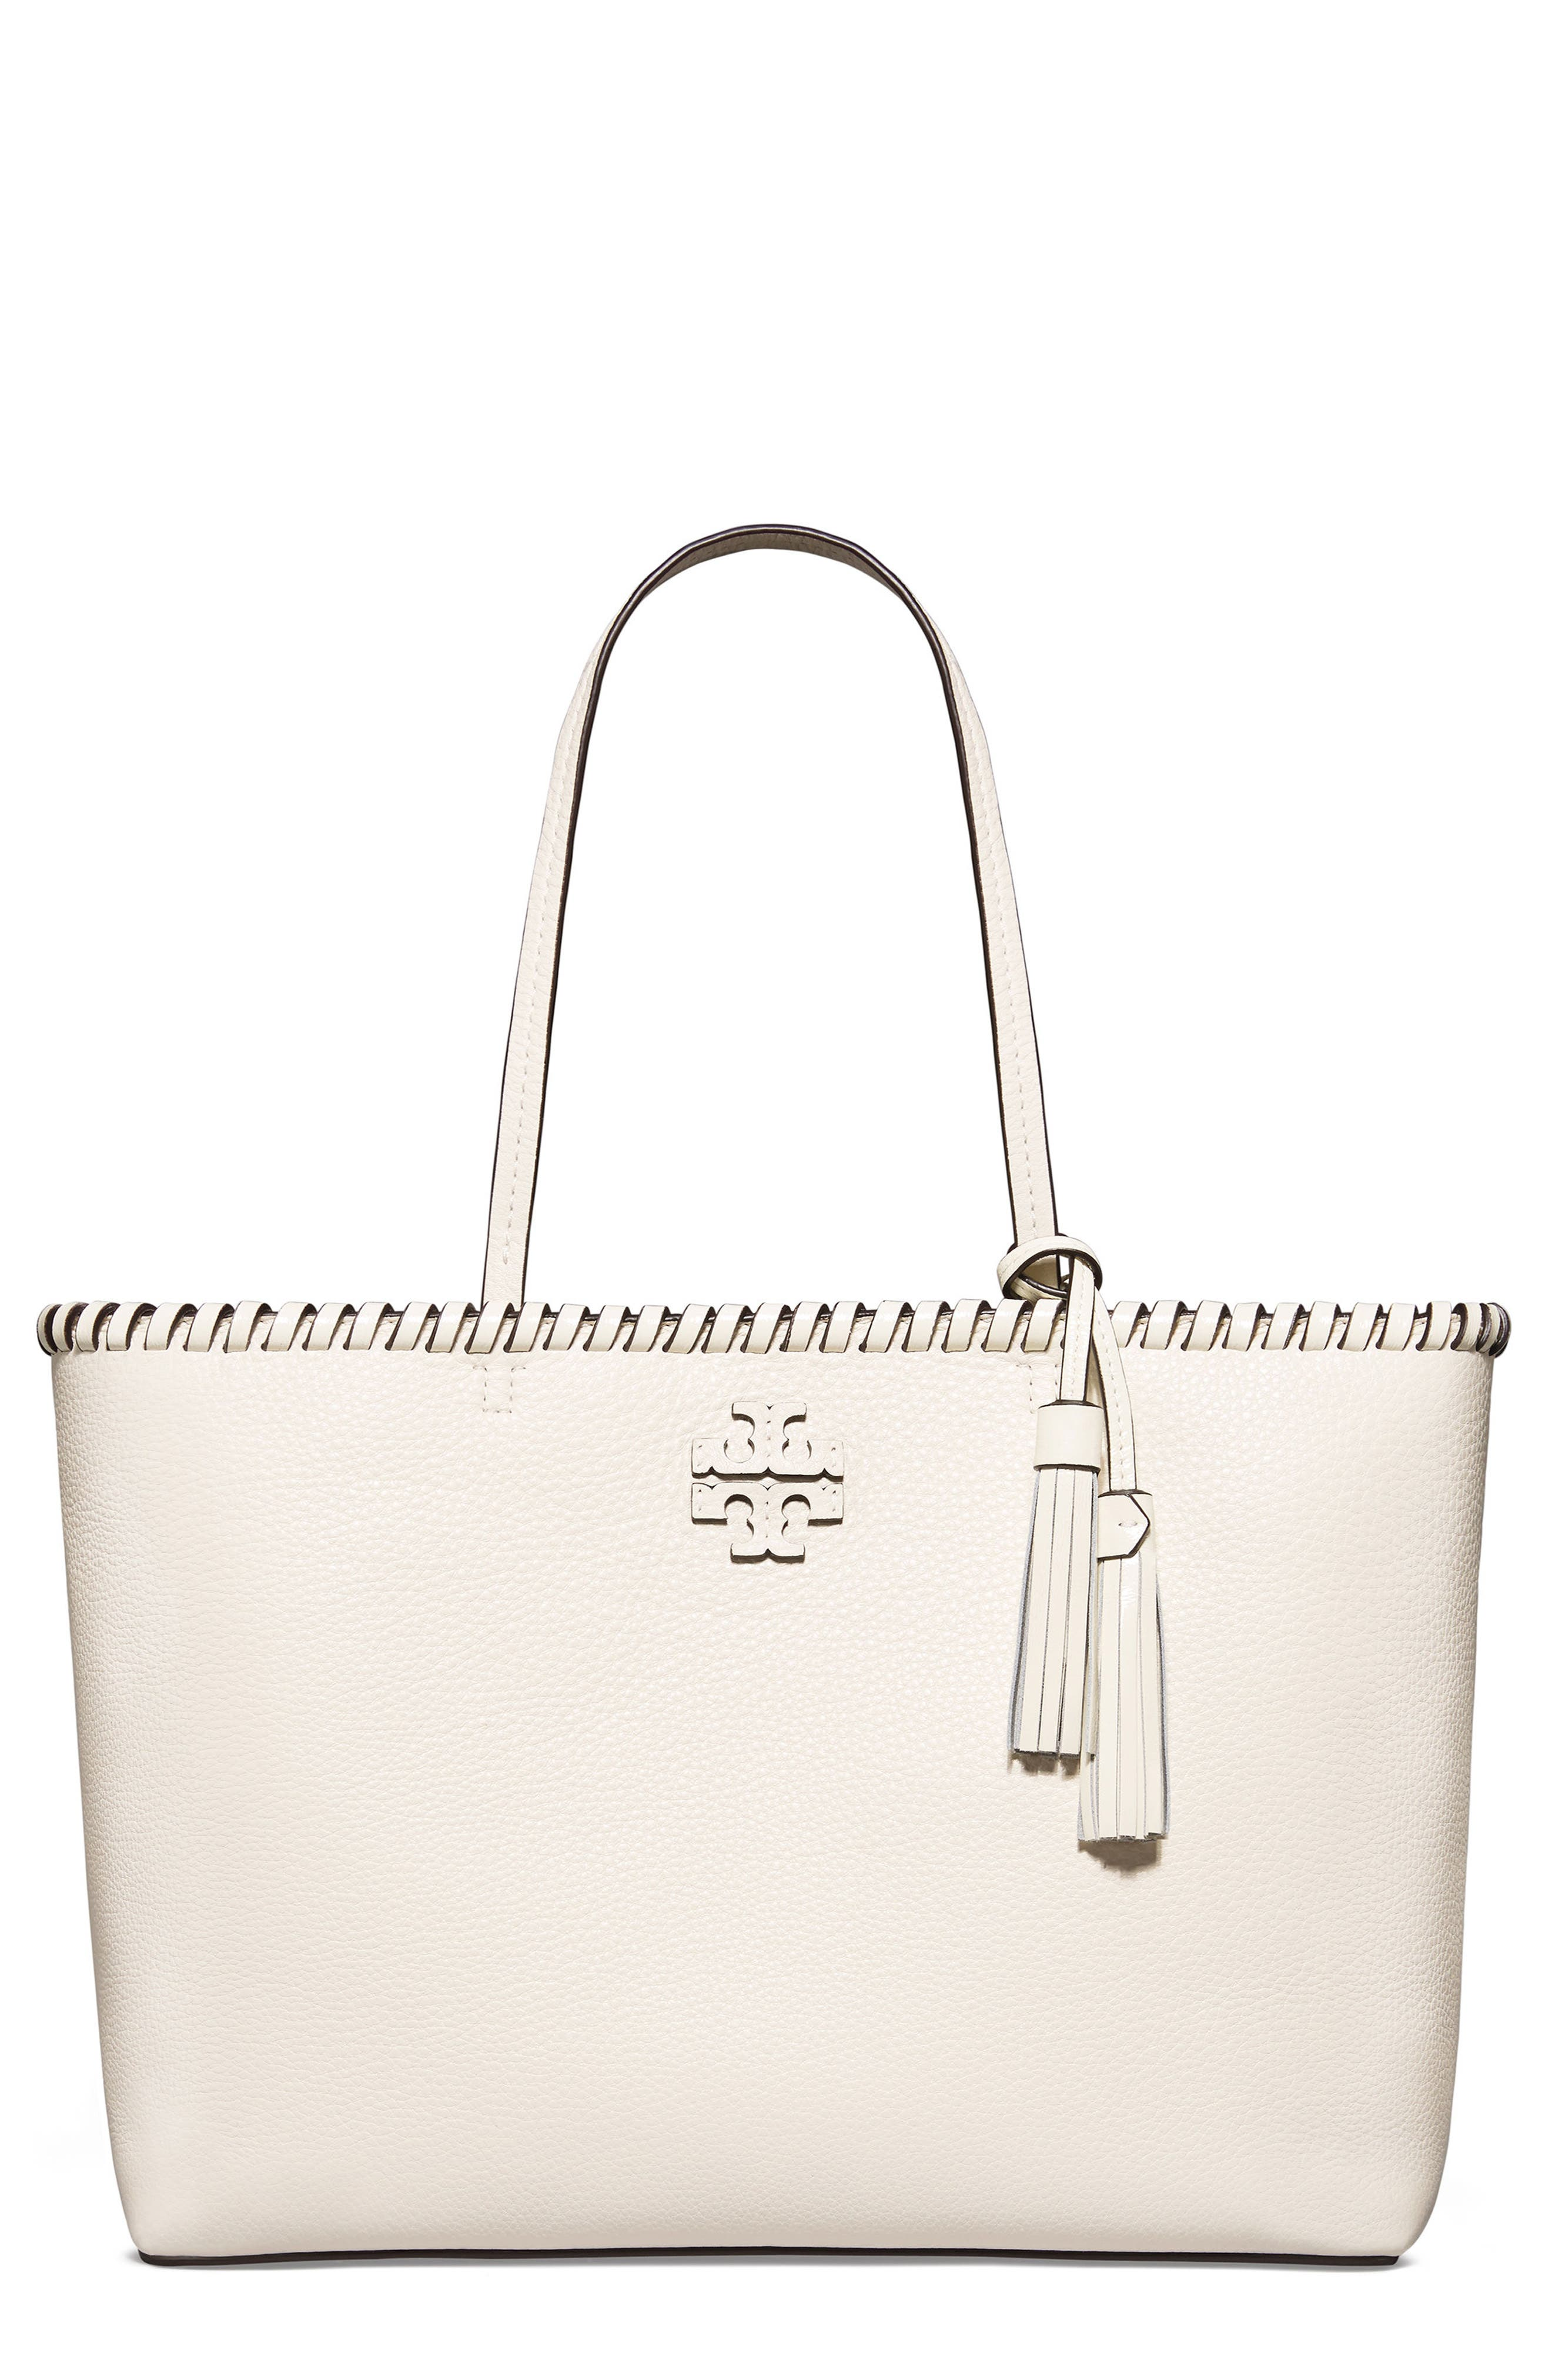 Tory Burch McGraw Whipstitch Leather Tote